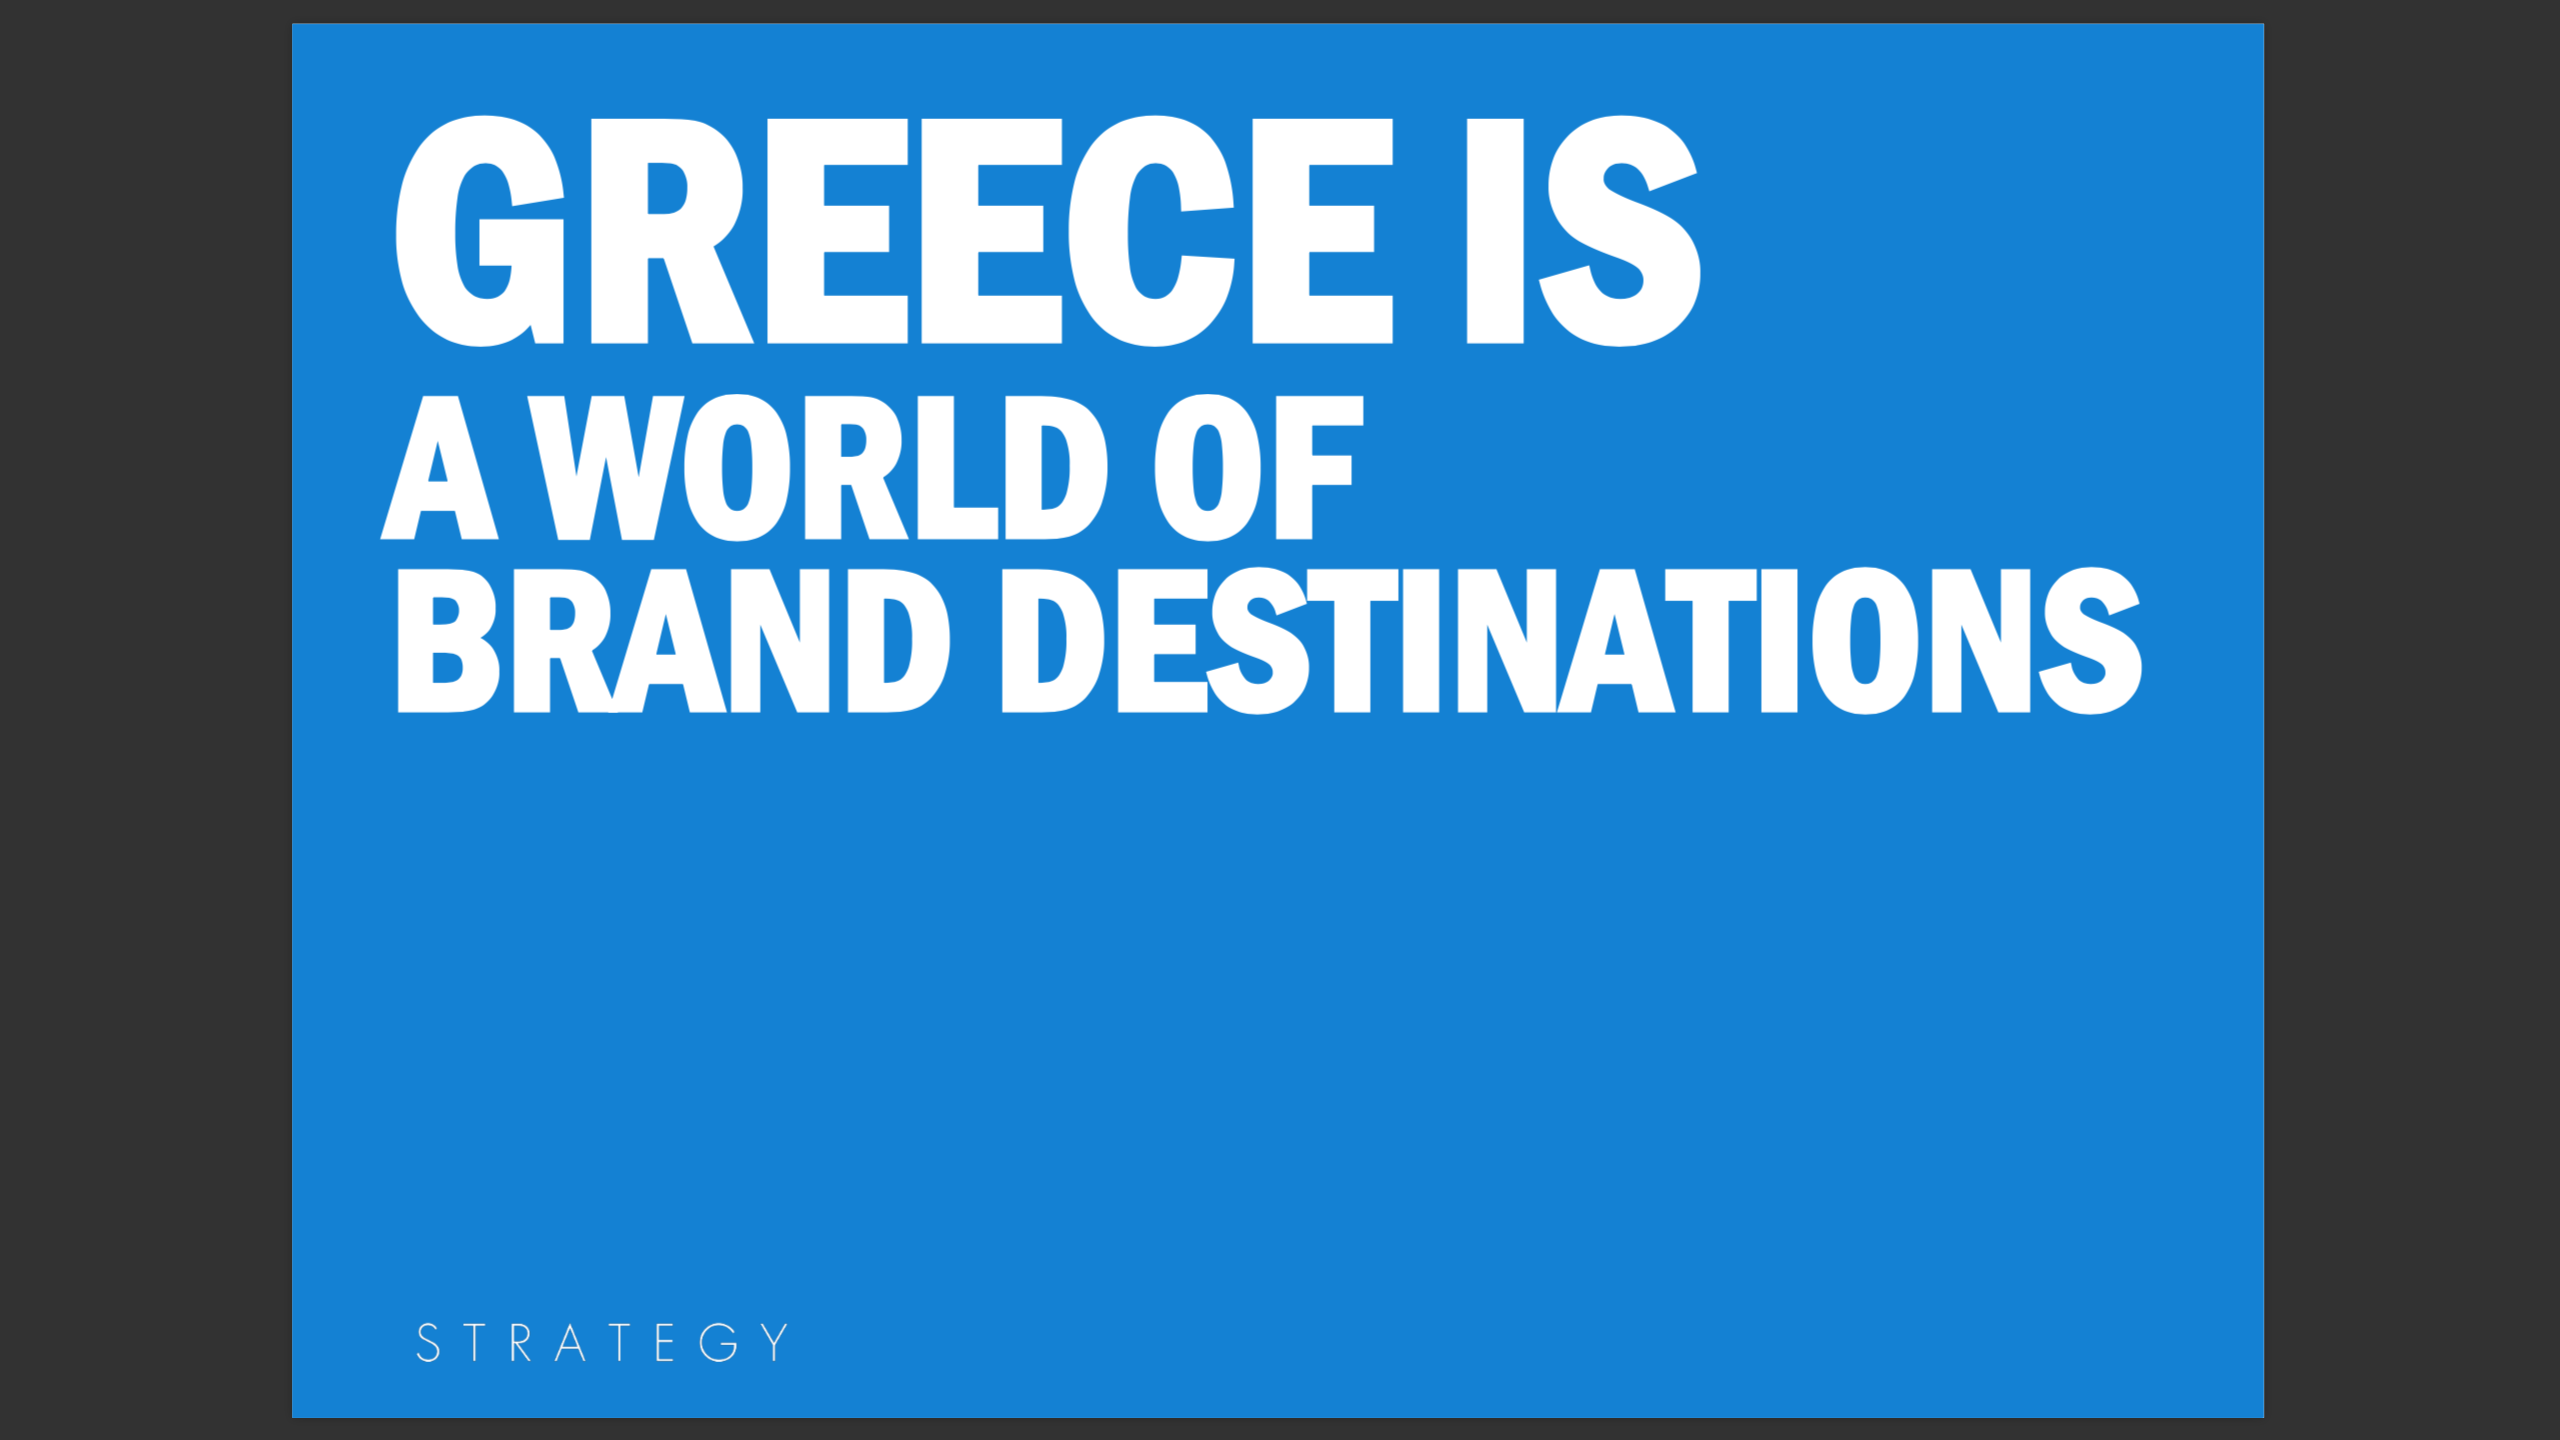 Greece is a world of brand destinations